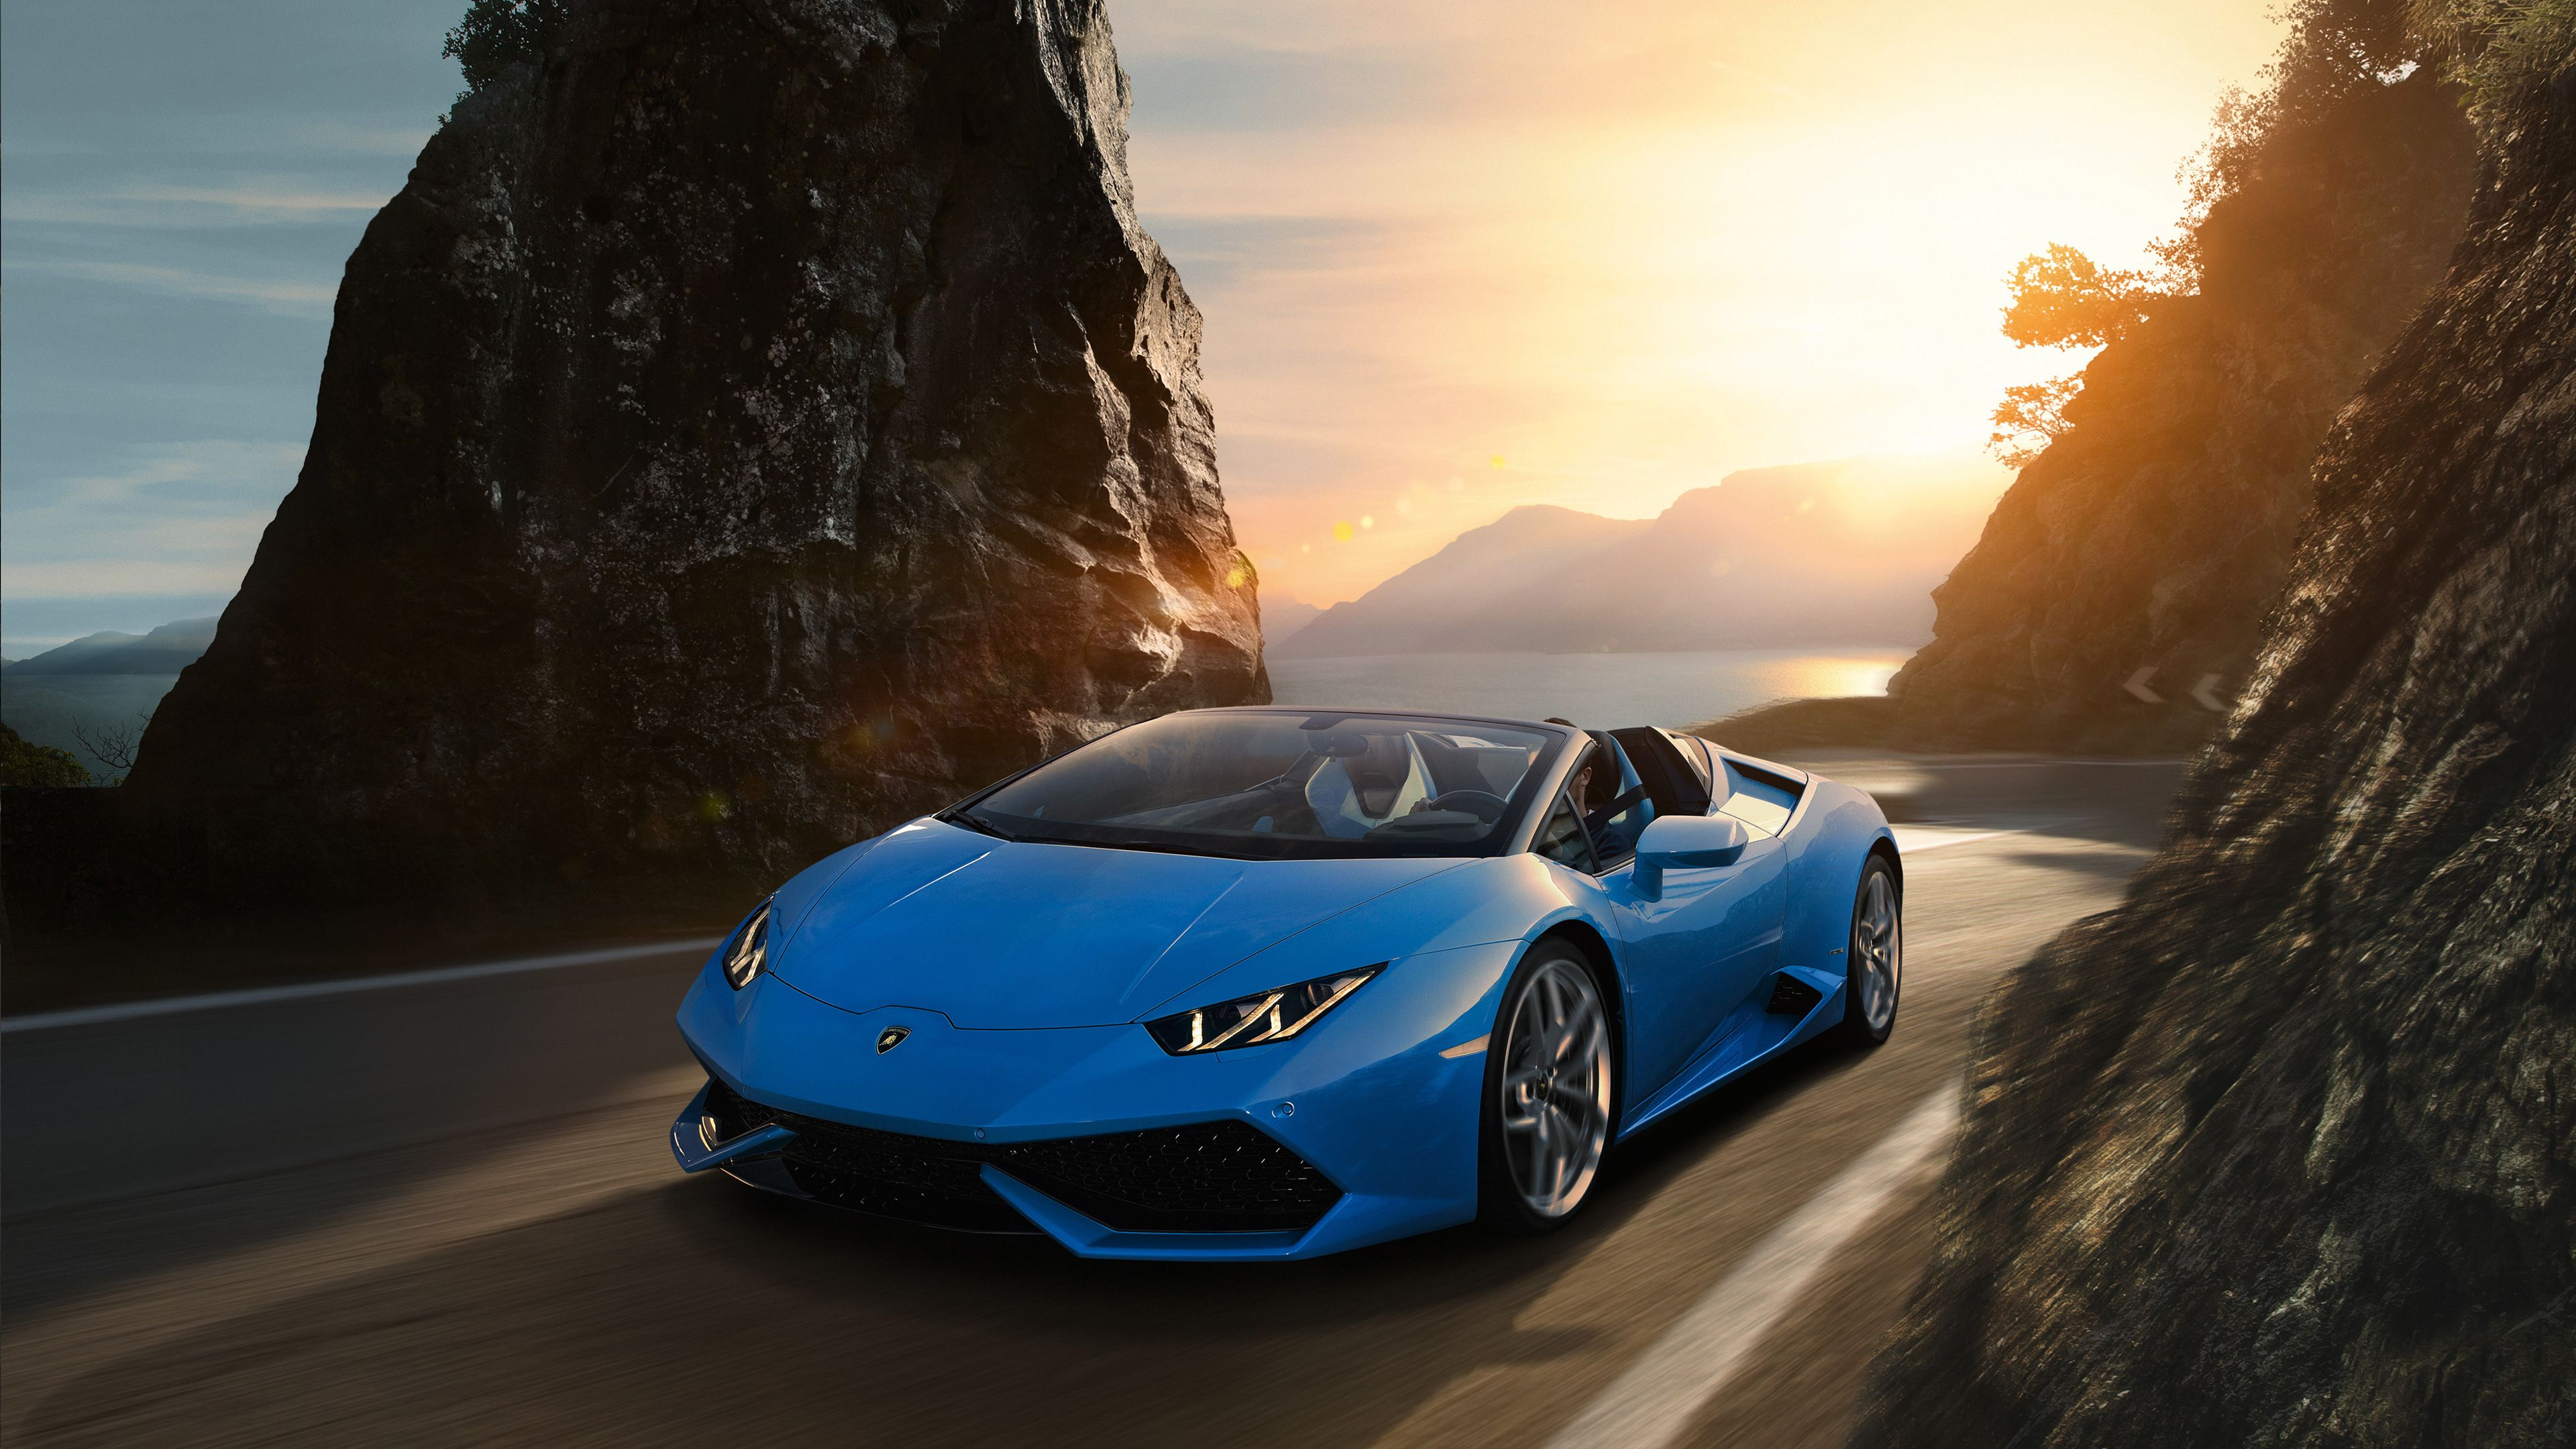 Sky Blue Lamborghini Huracan 4k Lamborghini Wallpapers Lamborghini Huracan Wallpapers Hd Wallpapers Car Blue Lamborghini Sports Car Wallpaper Car Wallpapers